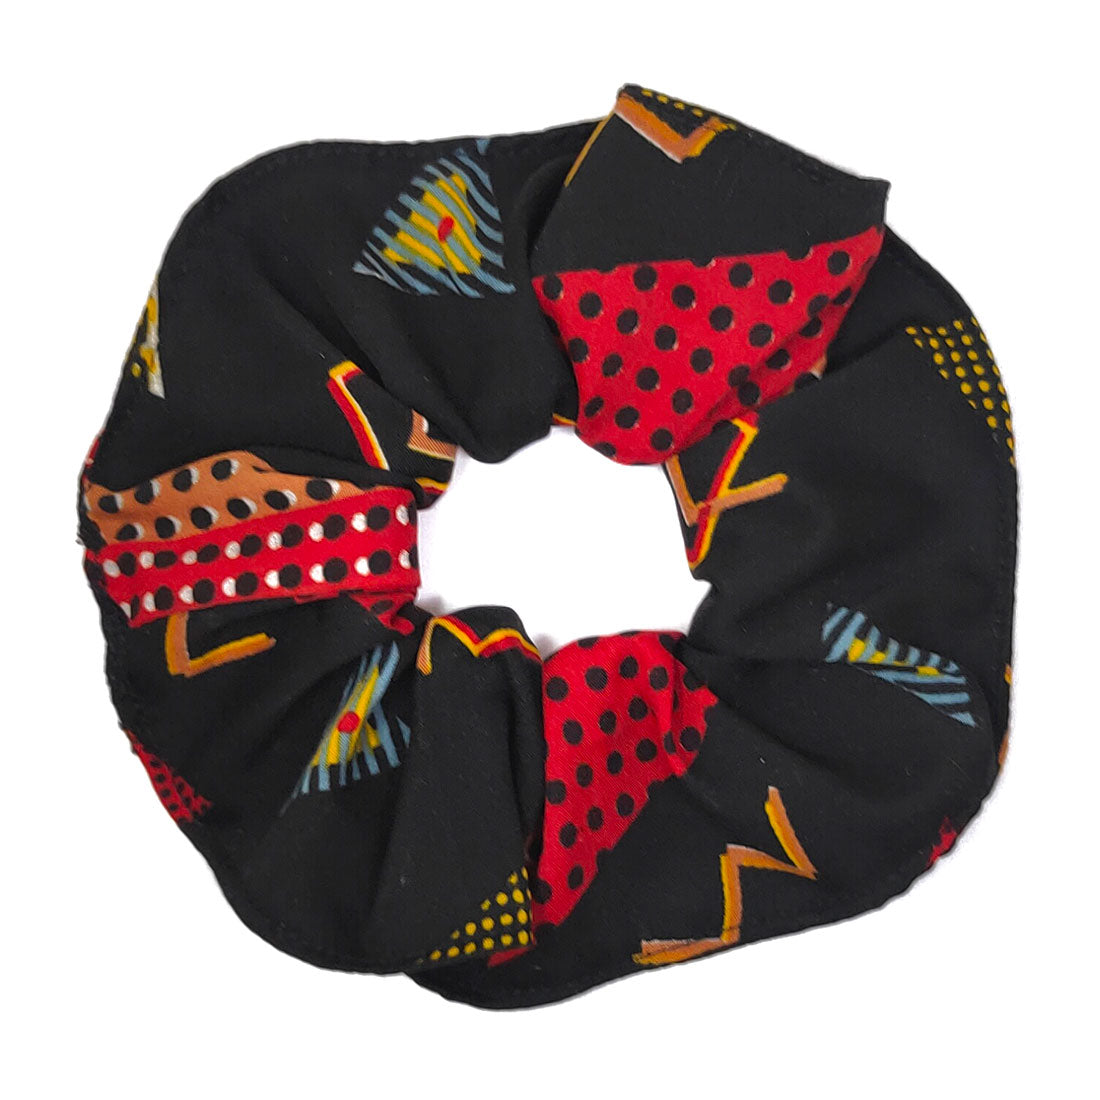 Anokhi Ada Handmade Large Printed Fabric Scrunchies/Ponytail Holders for Girls and Women (Black)-05-12H